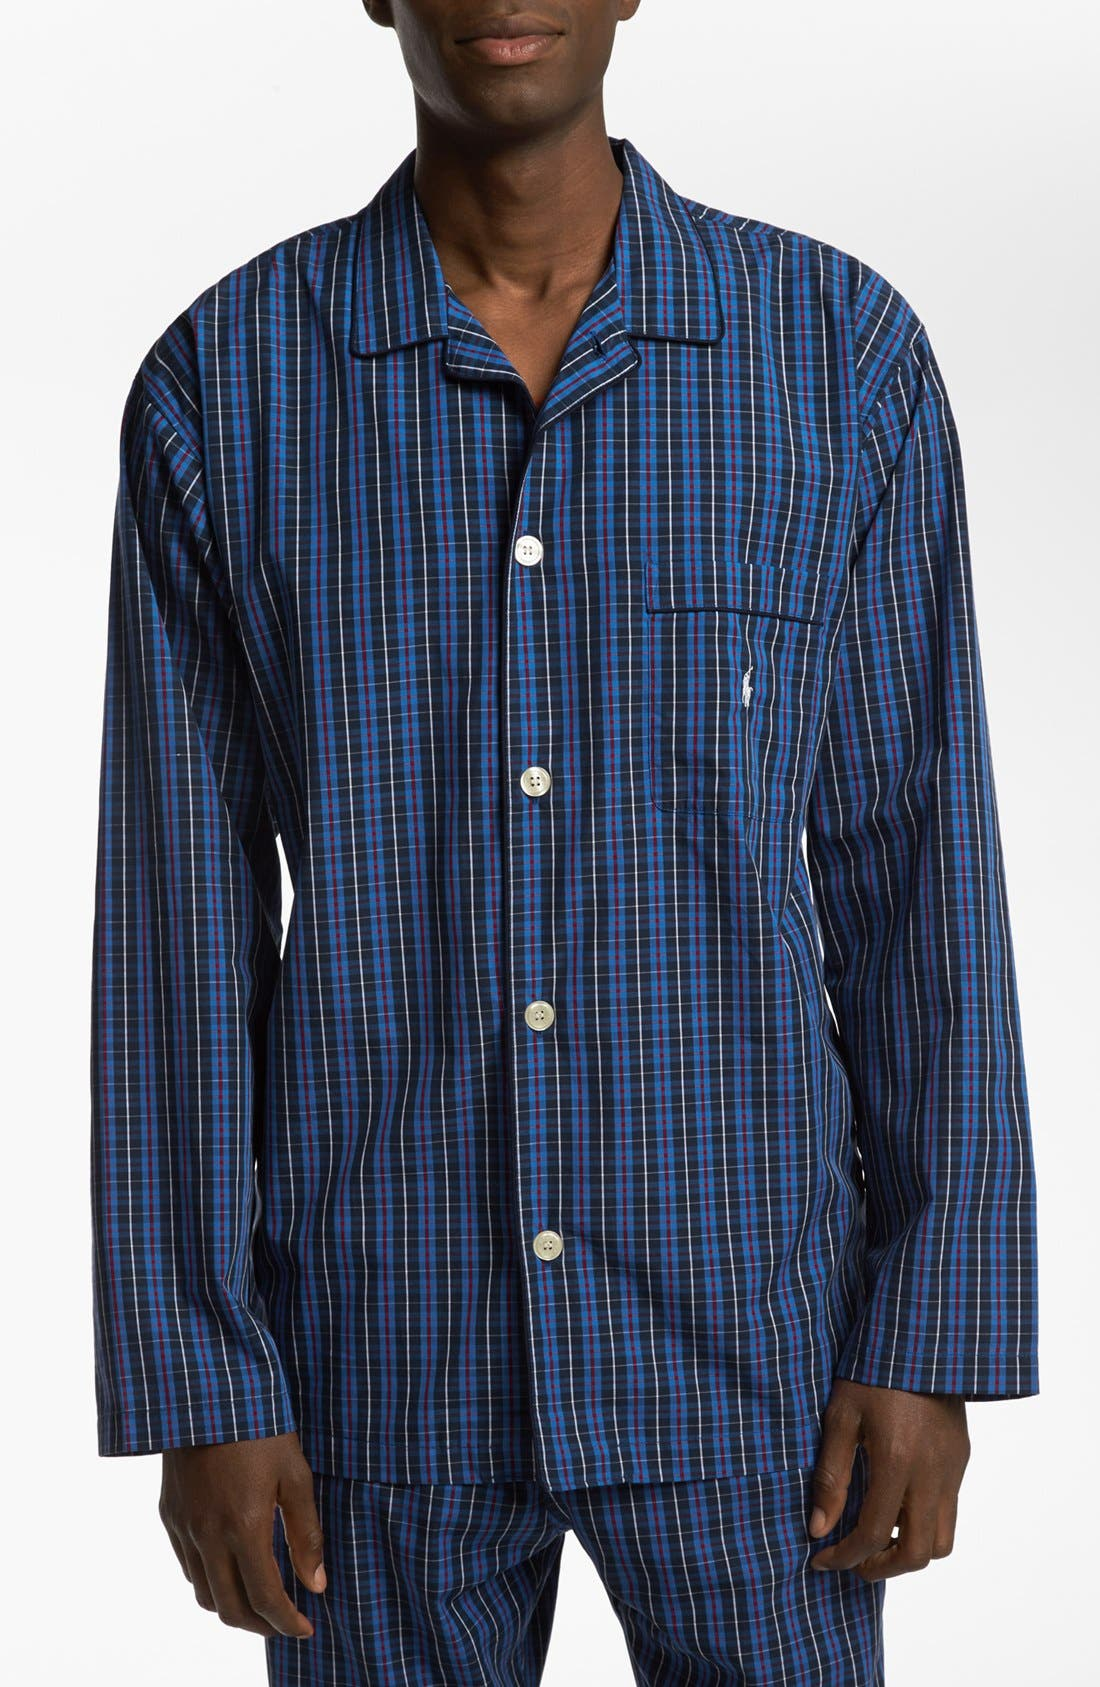 Alternate Image 1 Selected - Polo Ralph Lauren Woven Pajama Top